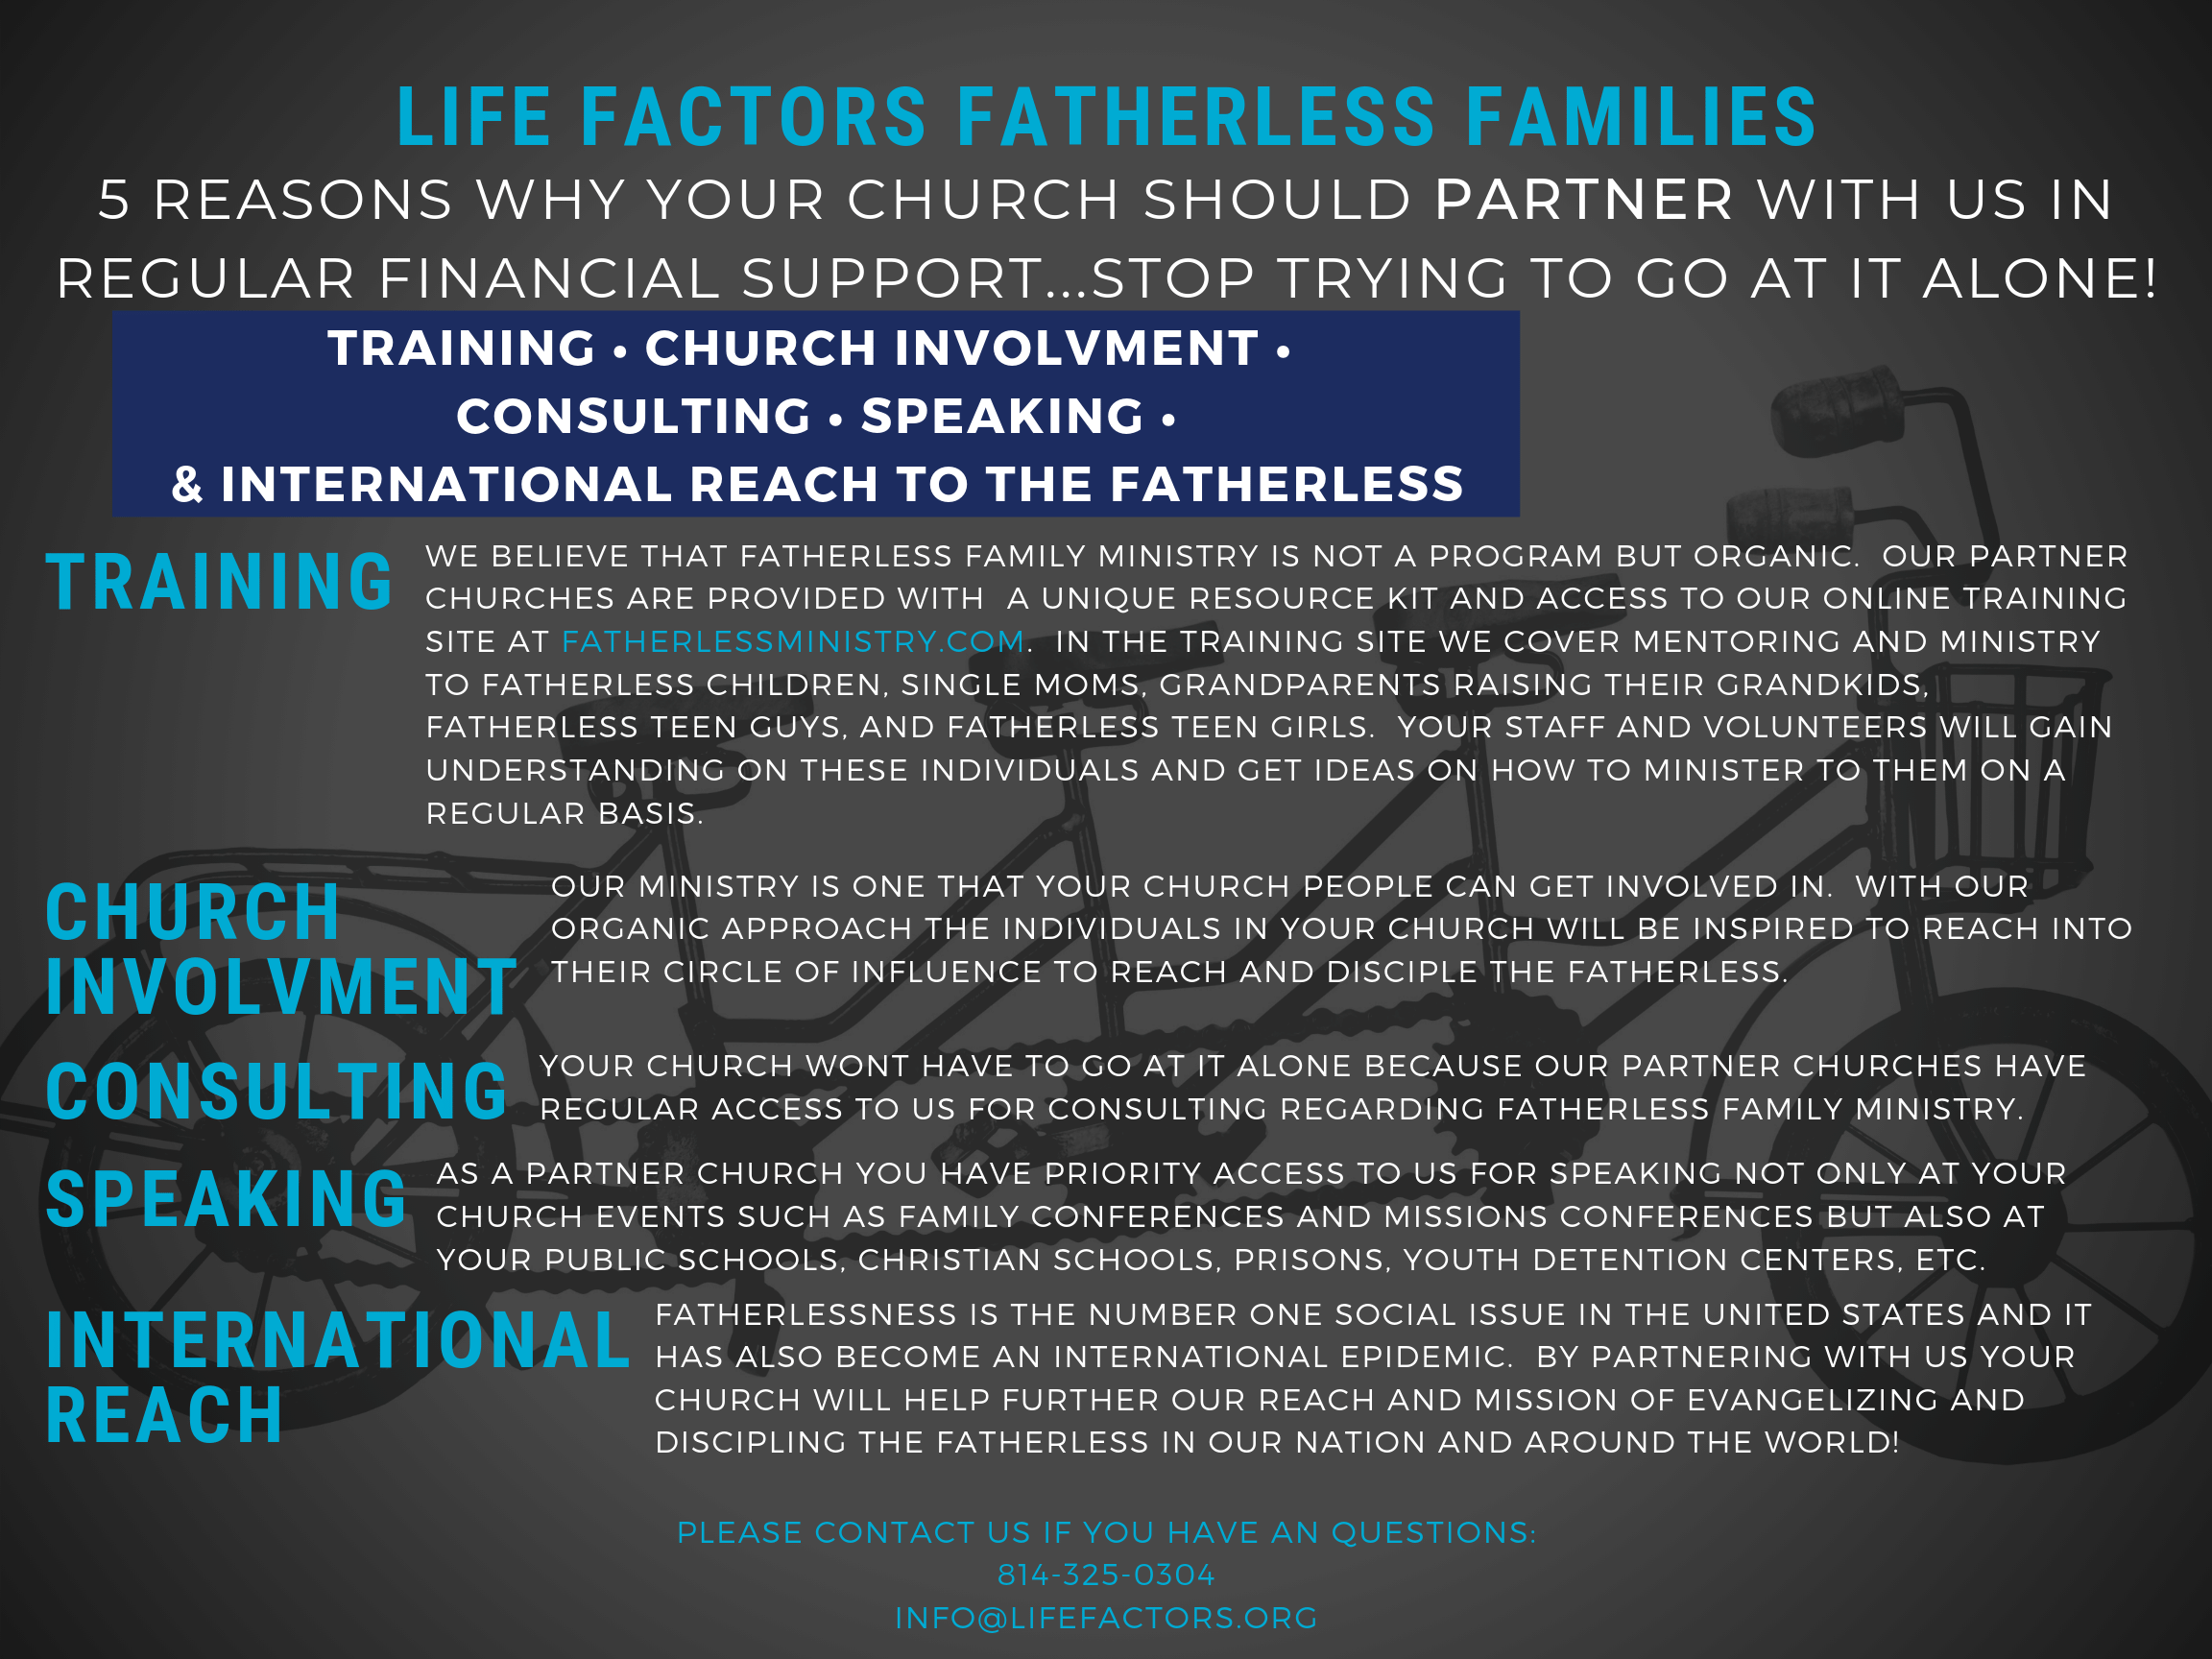 5 REASONS WHY YOUR CHURCH SHOULD PARTNER WITH US.png